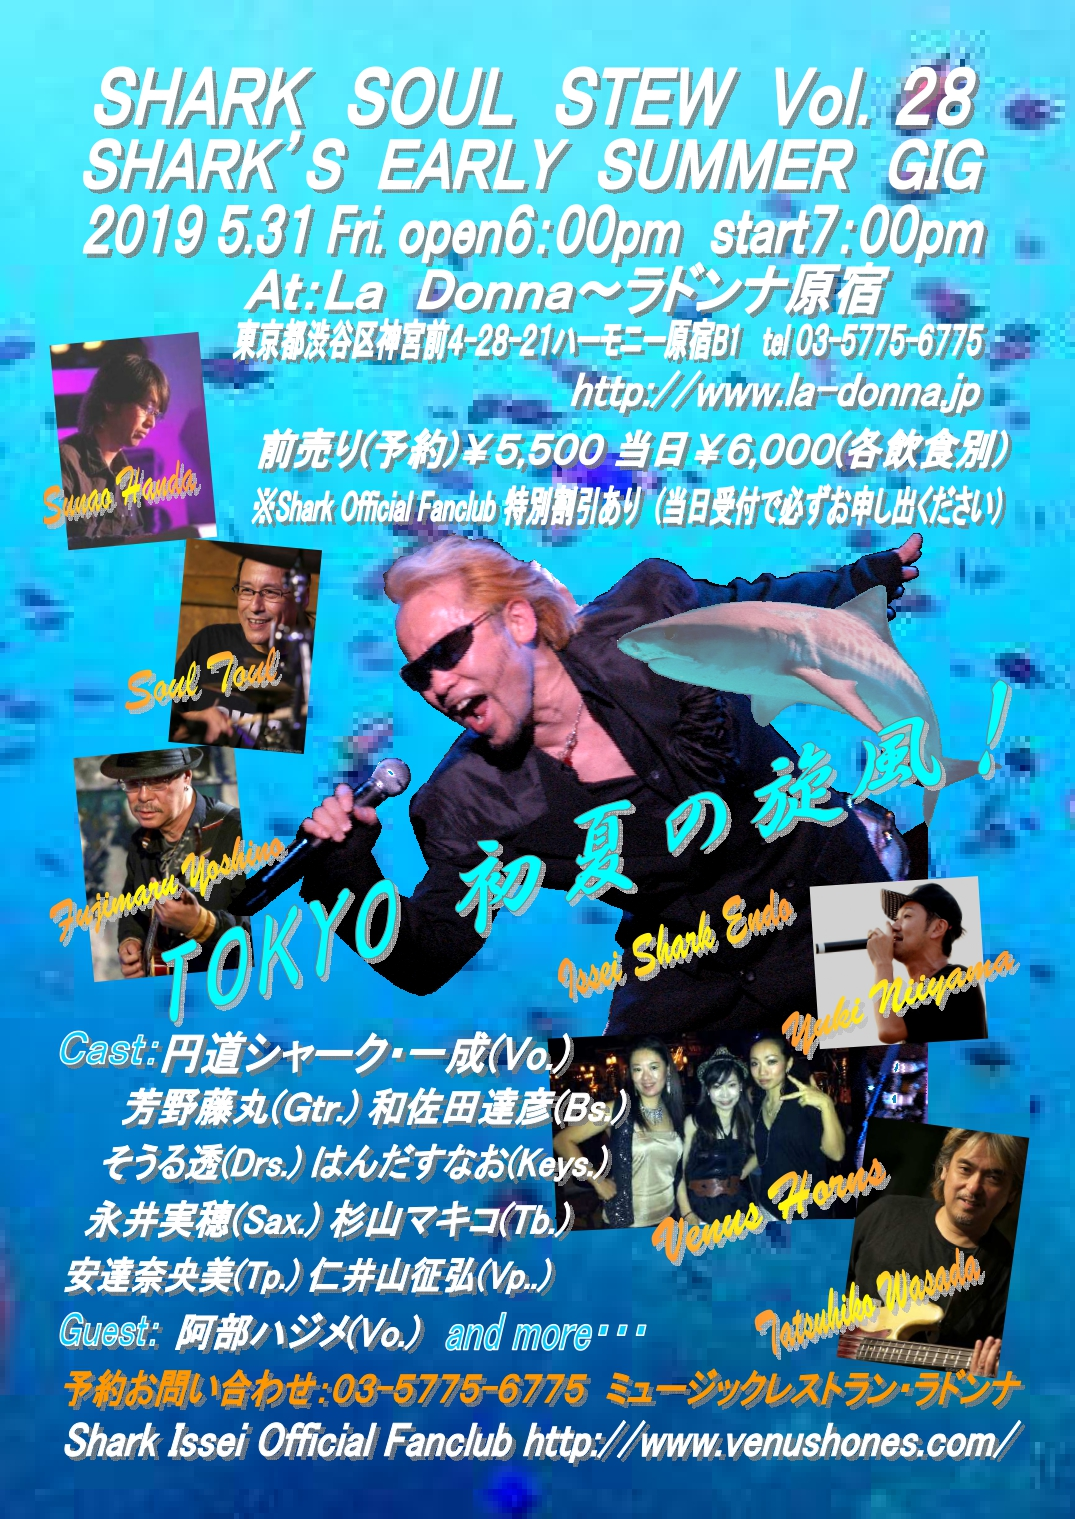 SHARK SOUL STEW Vol.28 SHARK's EARLY SUMMER GIG  TOKYO初夏の旋風!